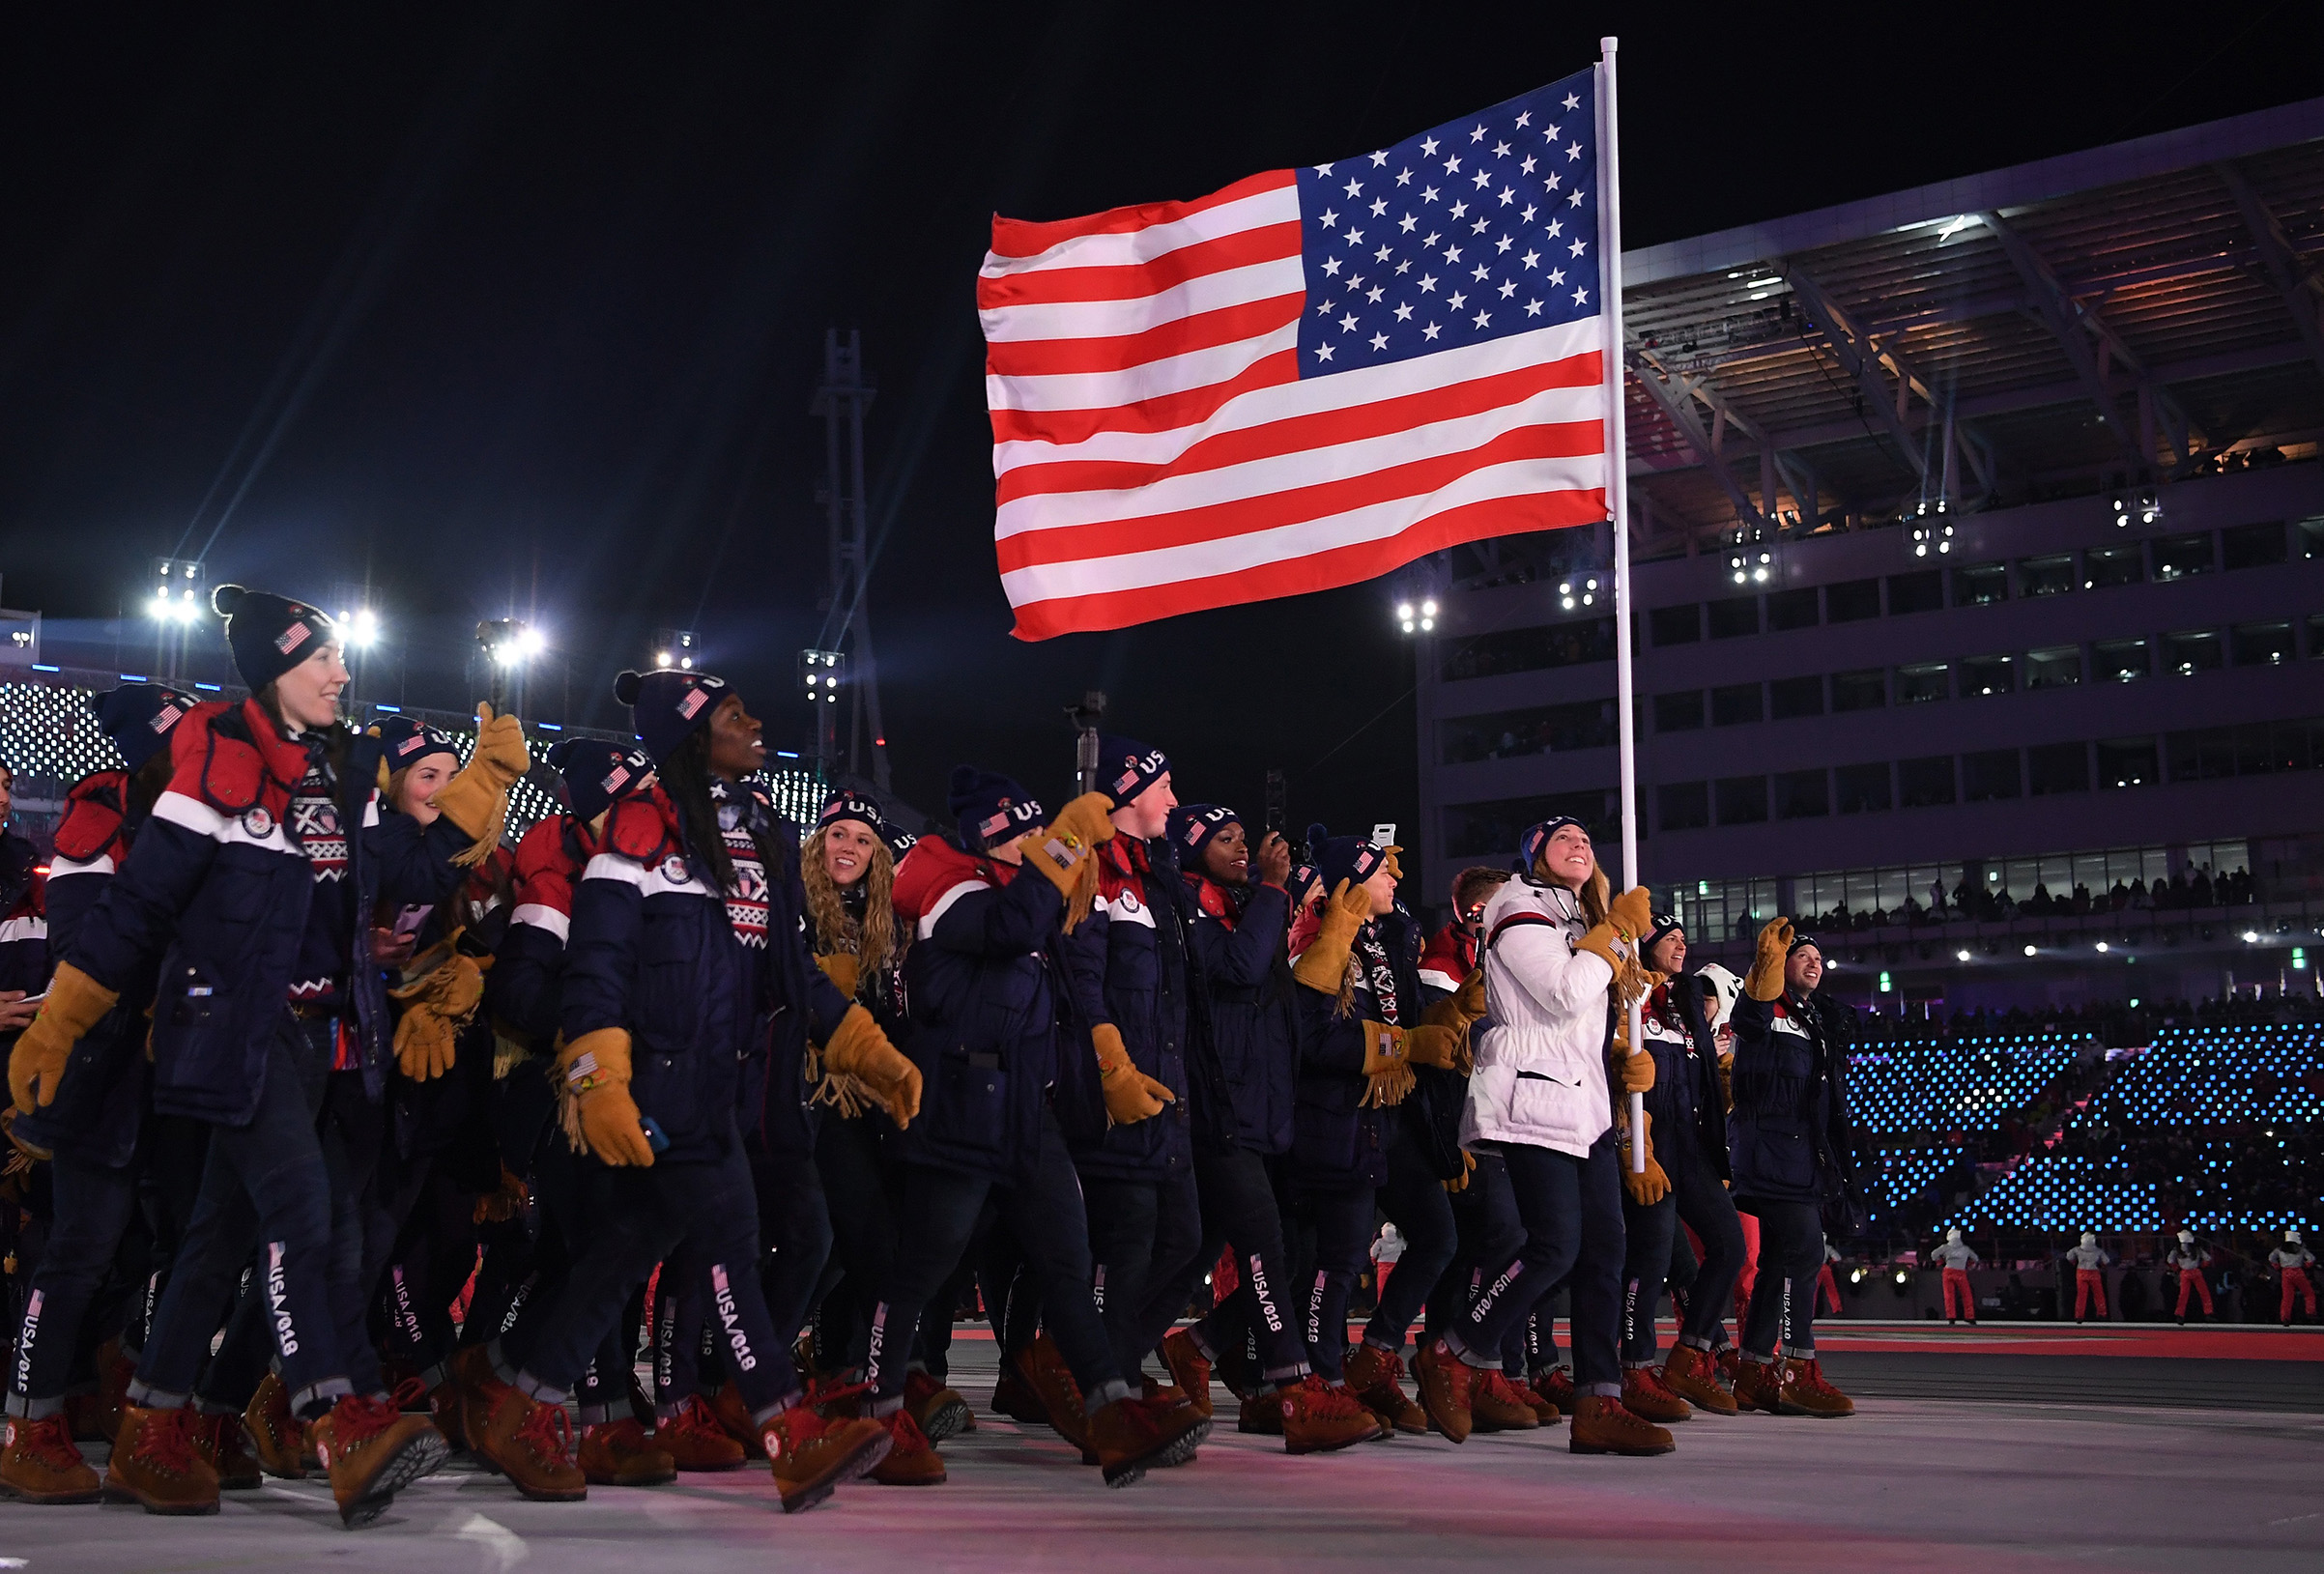 Flag bearer Erin Hamlin of the United States leads the team in the Parade of Athletes during the Opening Ceremony of the PyeongChang 2018 Winter Olympic Games.